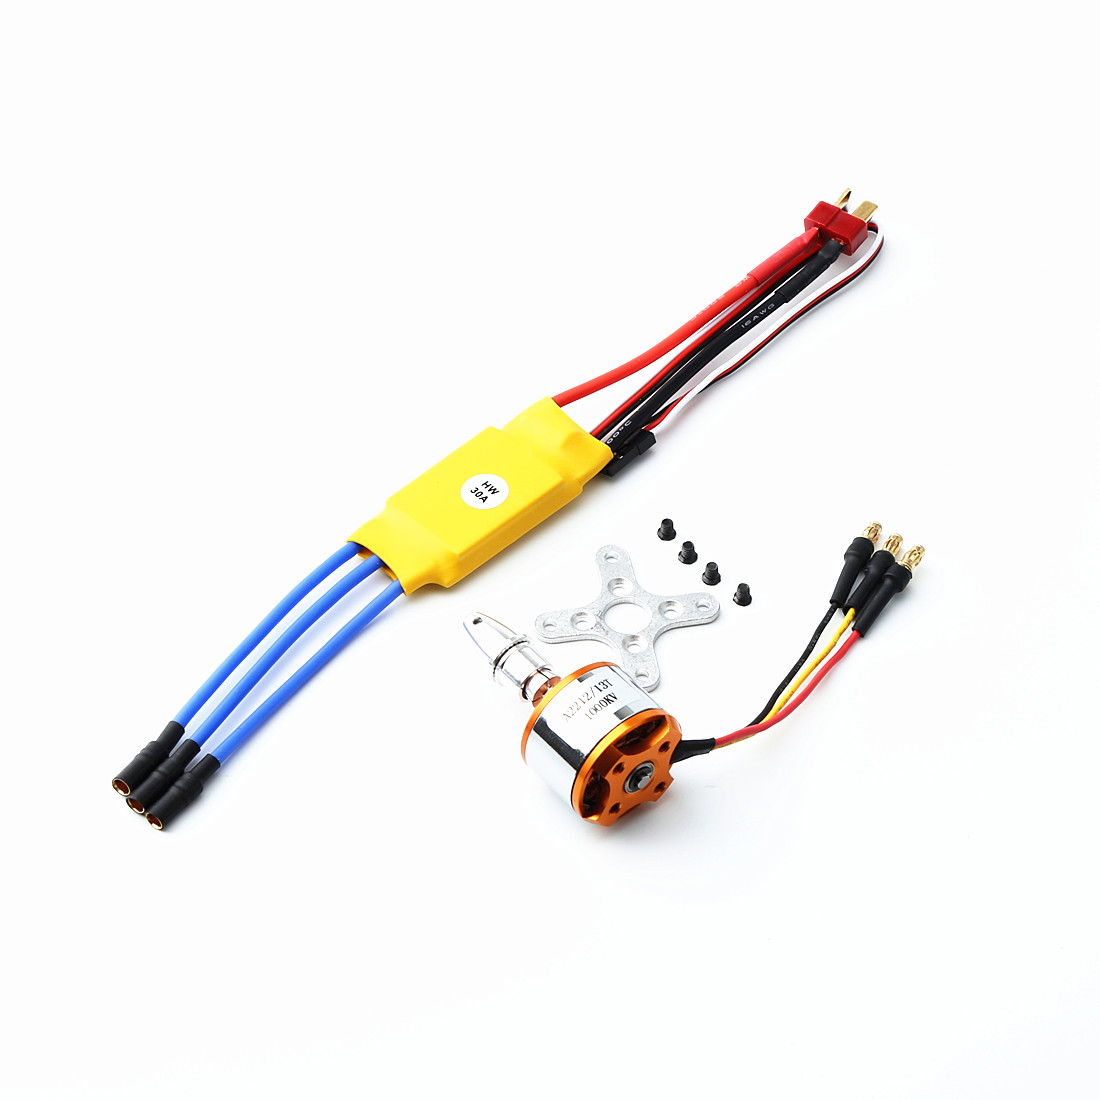 A2212 2212 1000KV/2200KV/1400KV Brushless Motor 30A/40A ESC With T Plug and 3.5mm Banana Connectors for RC Fixed Wing Plane Helicopter